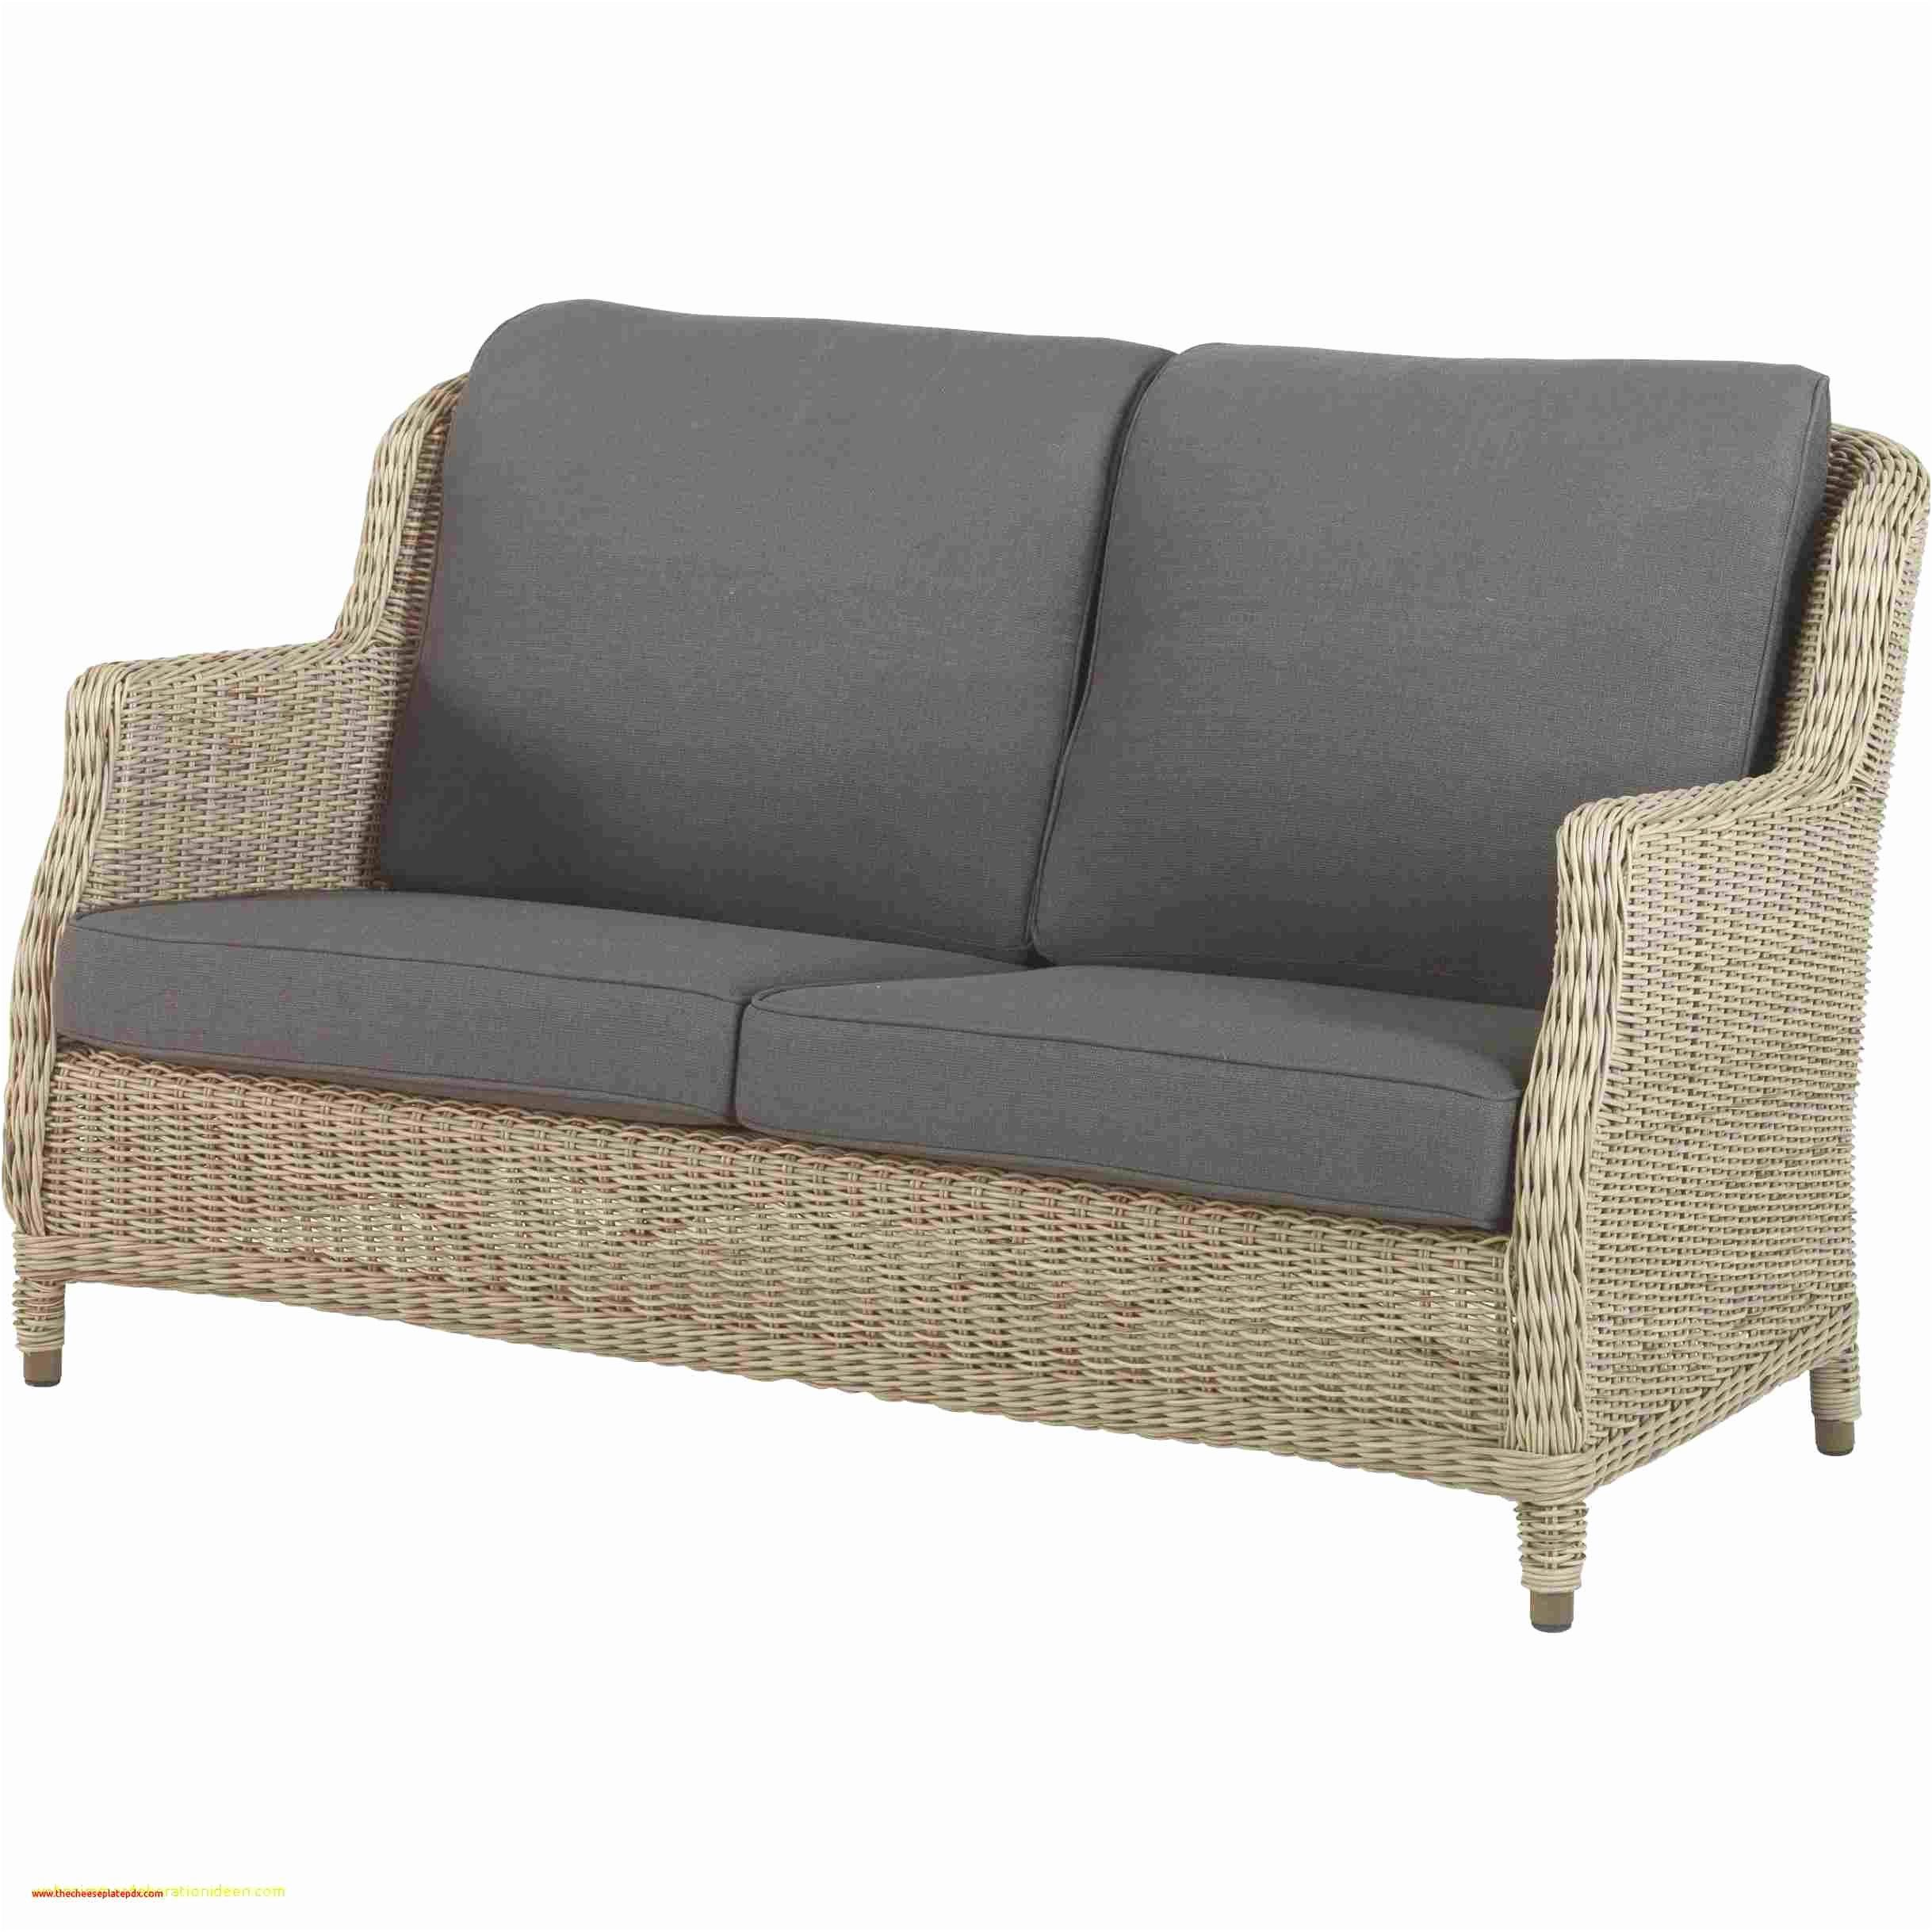 Einfach Jugendcouch In 2020 Elegant Sofa Bed Sofa Bed Sale Wicker Sofa